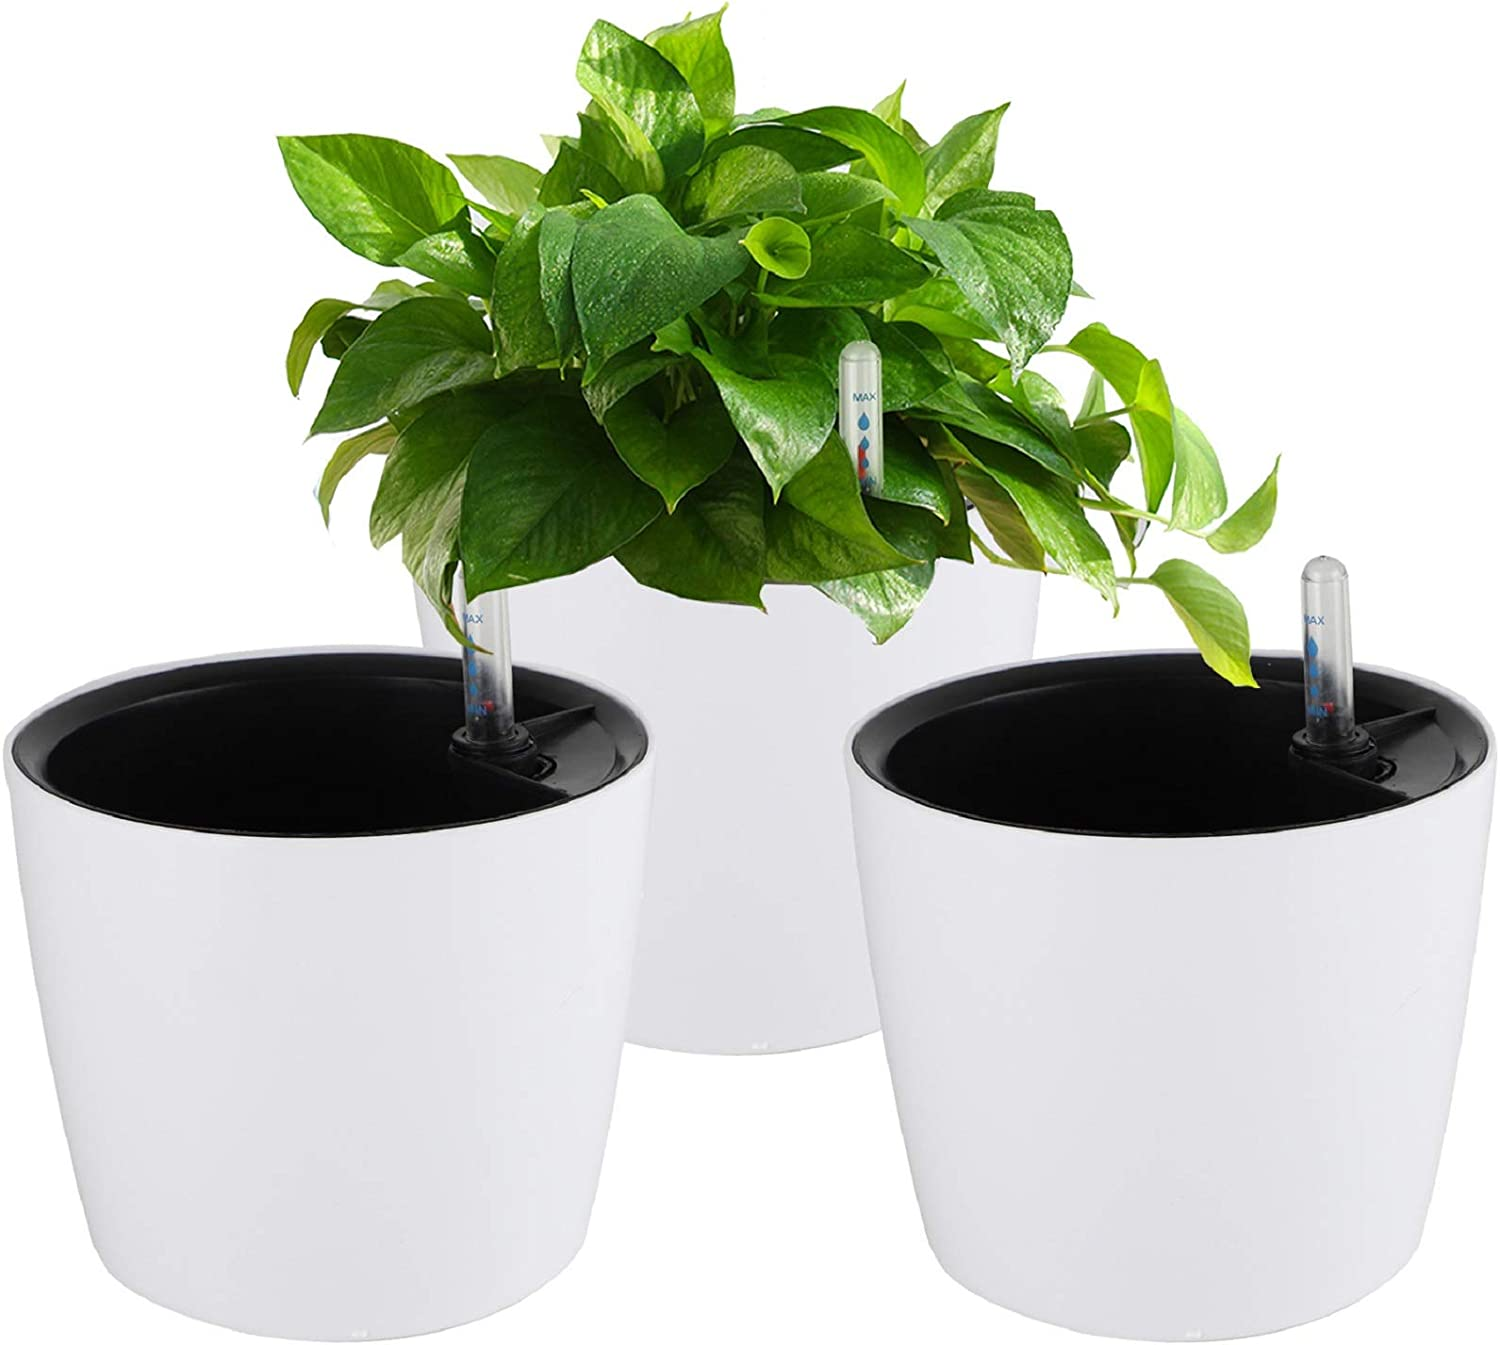 Amazon Com Plastic Planter Flower Pot White Plant Pots Self Watering Planters 7 Inches 3 Pack Plant Containers With Water Level Indicator For House Plants African Violets Succulents Plants Indoor Outdoor Kitchen